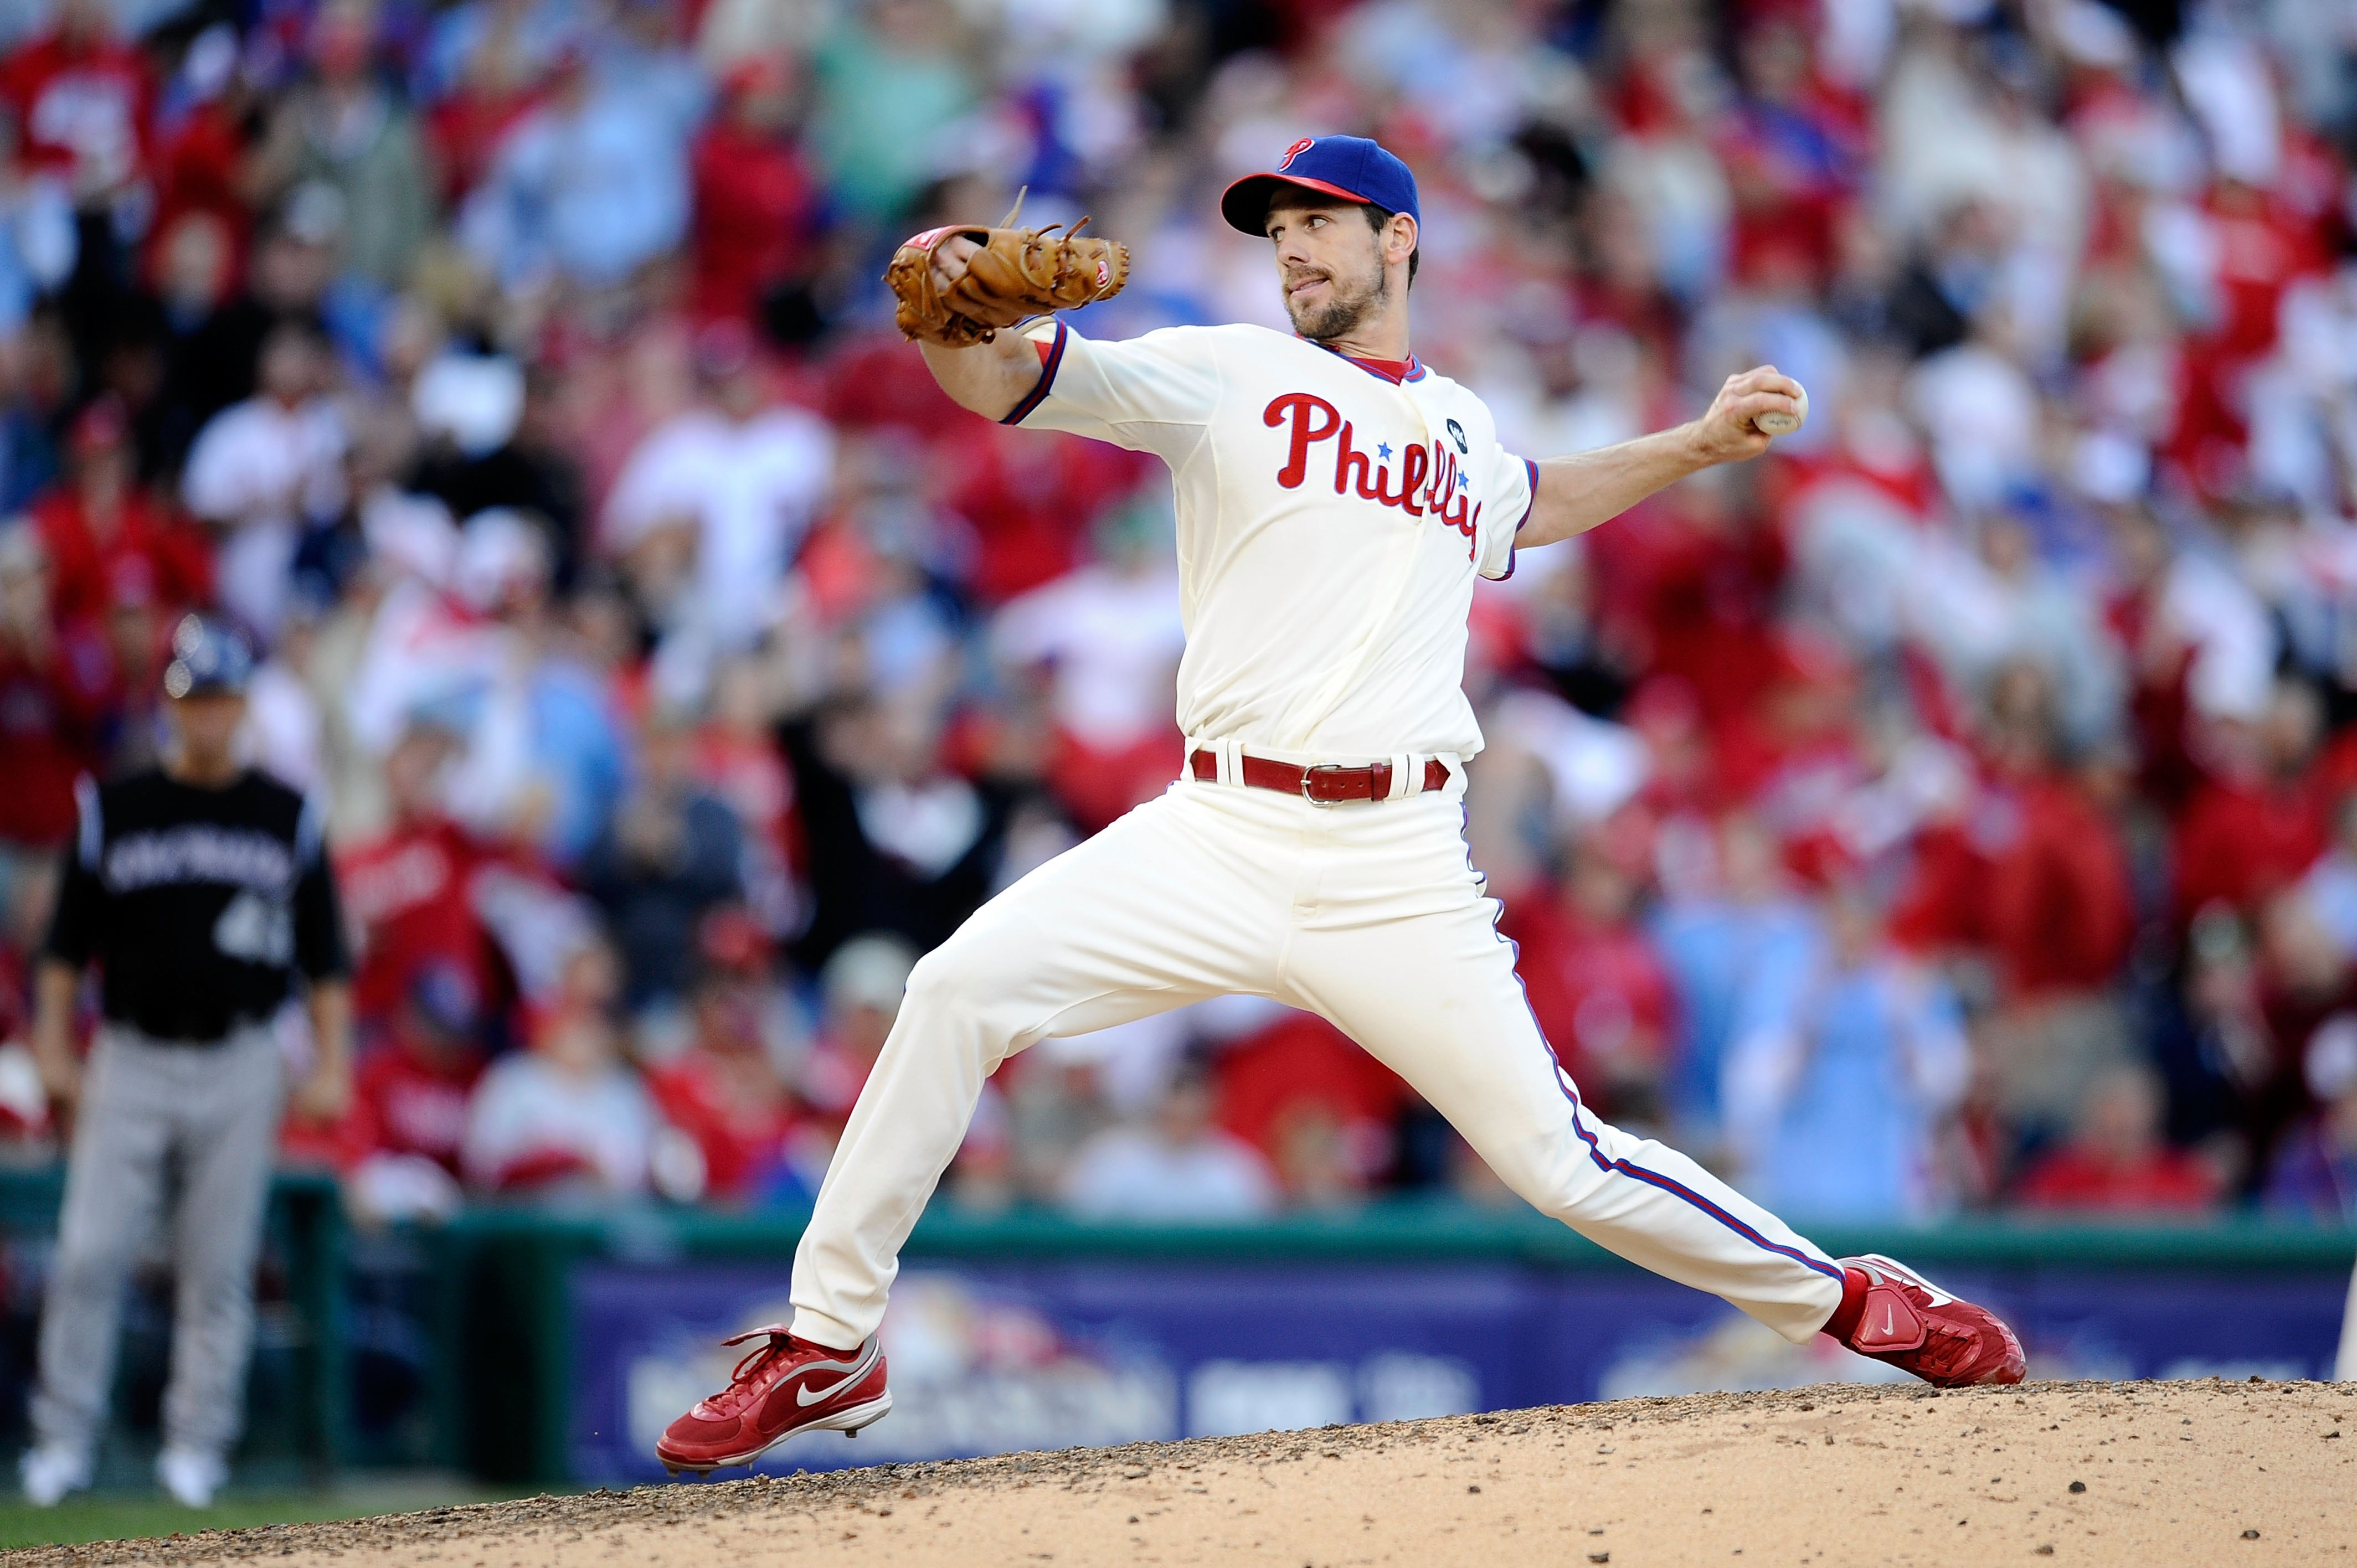 PHILADELPHIA - OCTOBER 07:  Starting pitcher Cliff Lee #34 of the Philadelphia Phillies throws a pitch against the Colorado Rockies in Game One of the NLDS during the 2009 MLB Playoffs at Citizens Bank Park on October 7, 2009 in Philadelphia, Pennsylvania